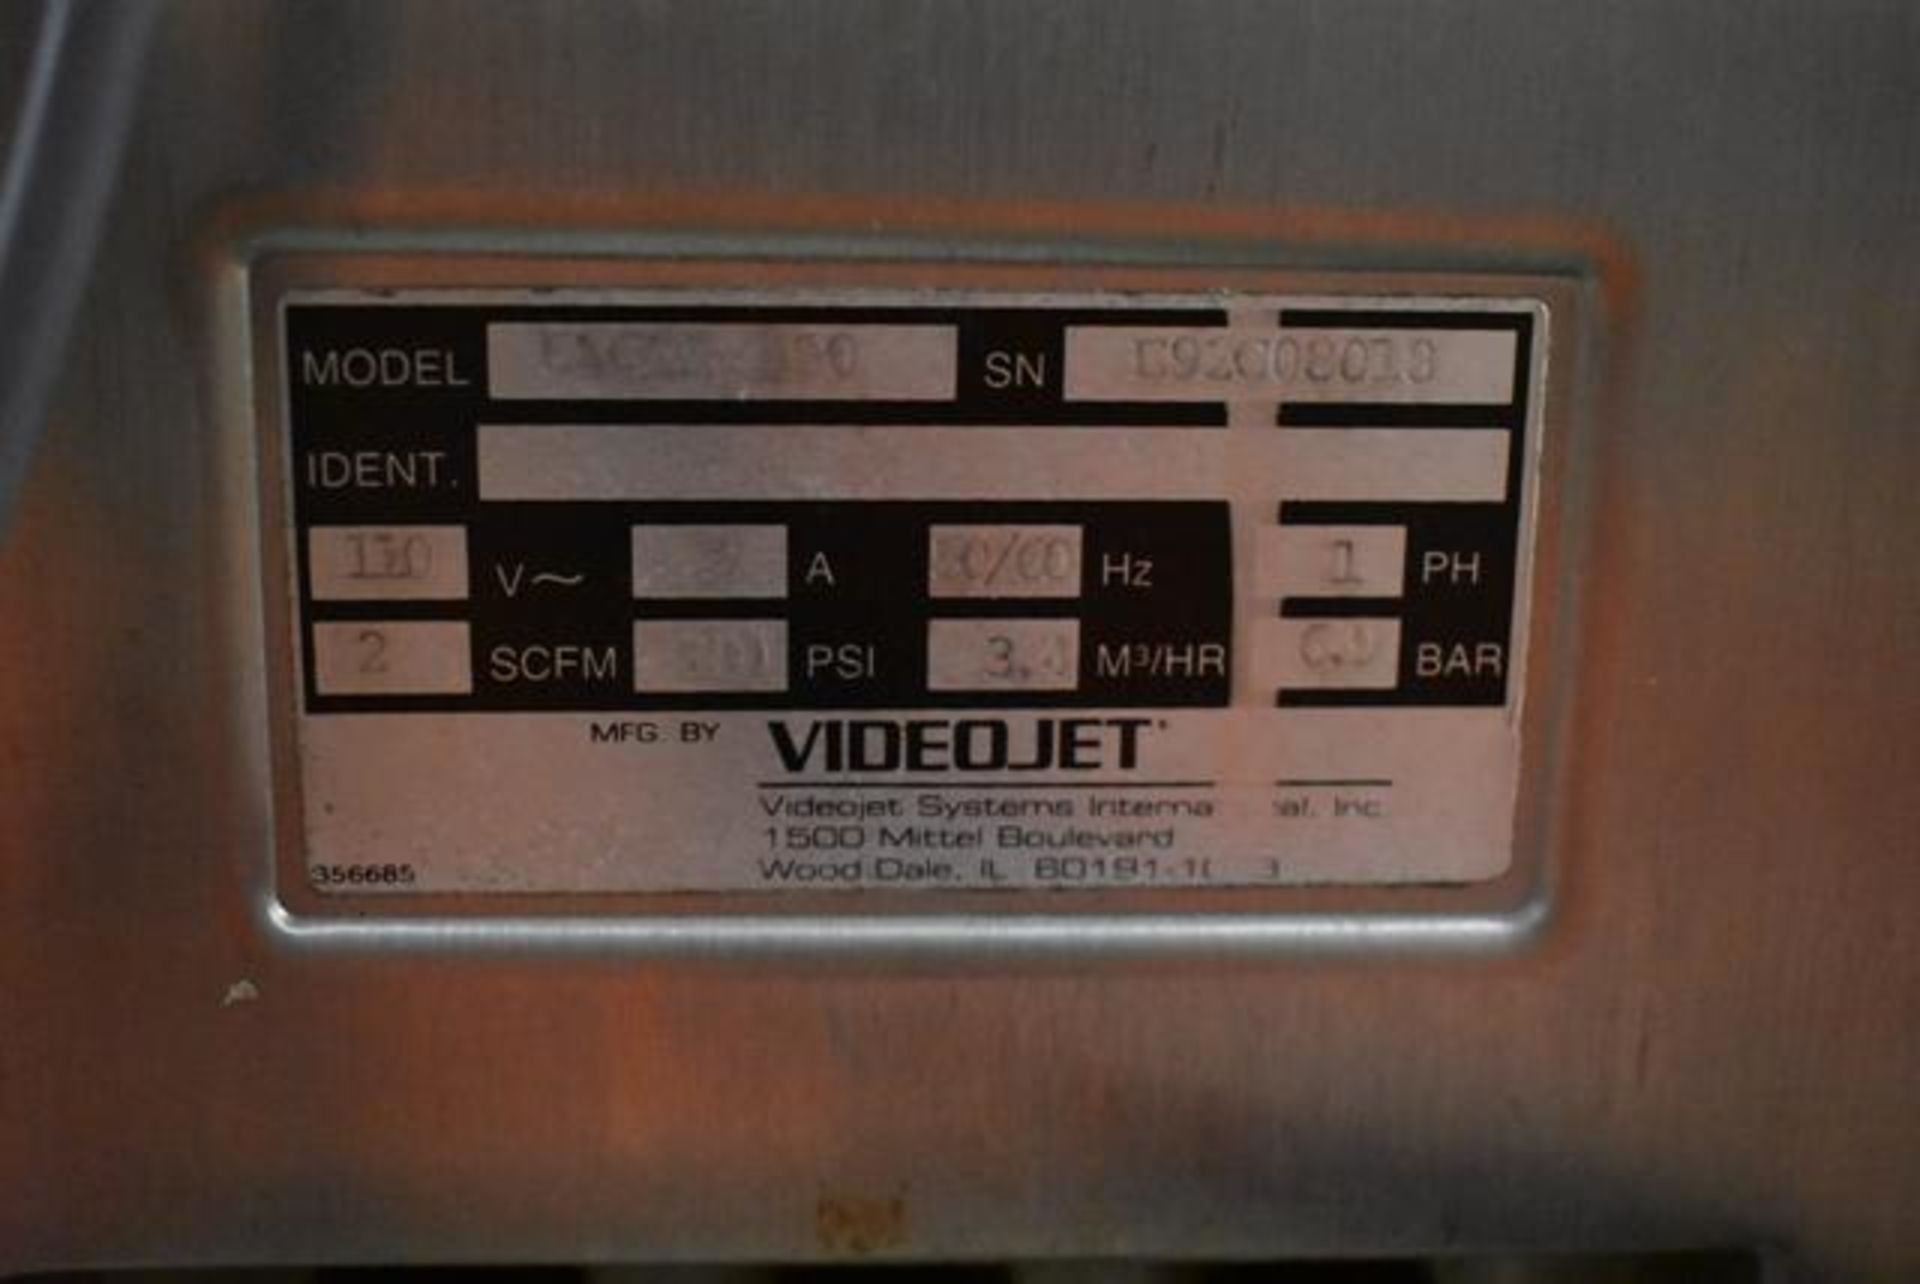 Lot 217 - VideoJet Excel Series 100 Includes SS Stand, Loading Fee: $50